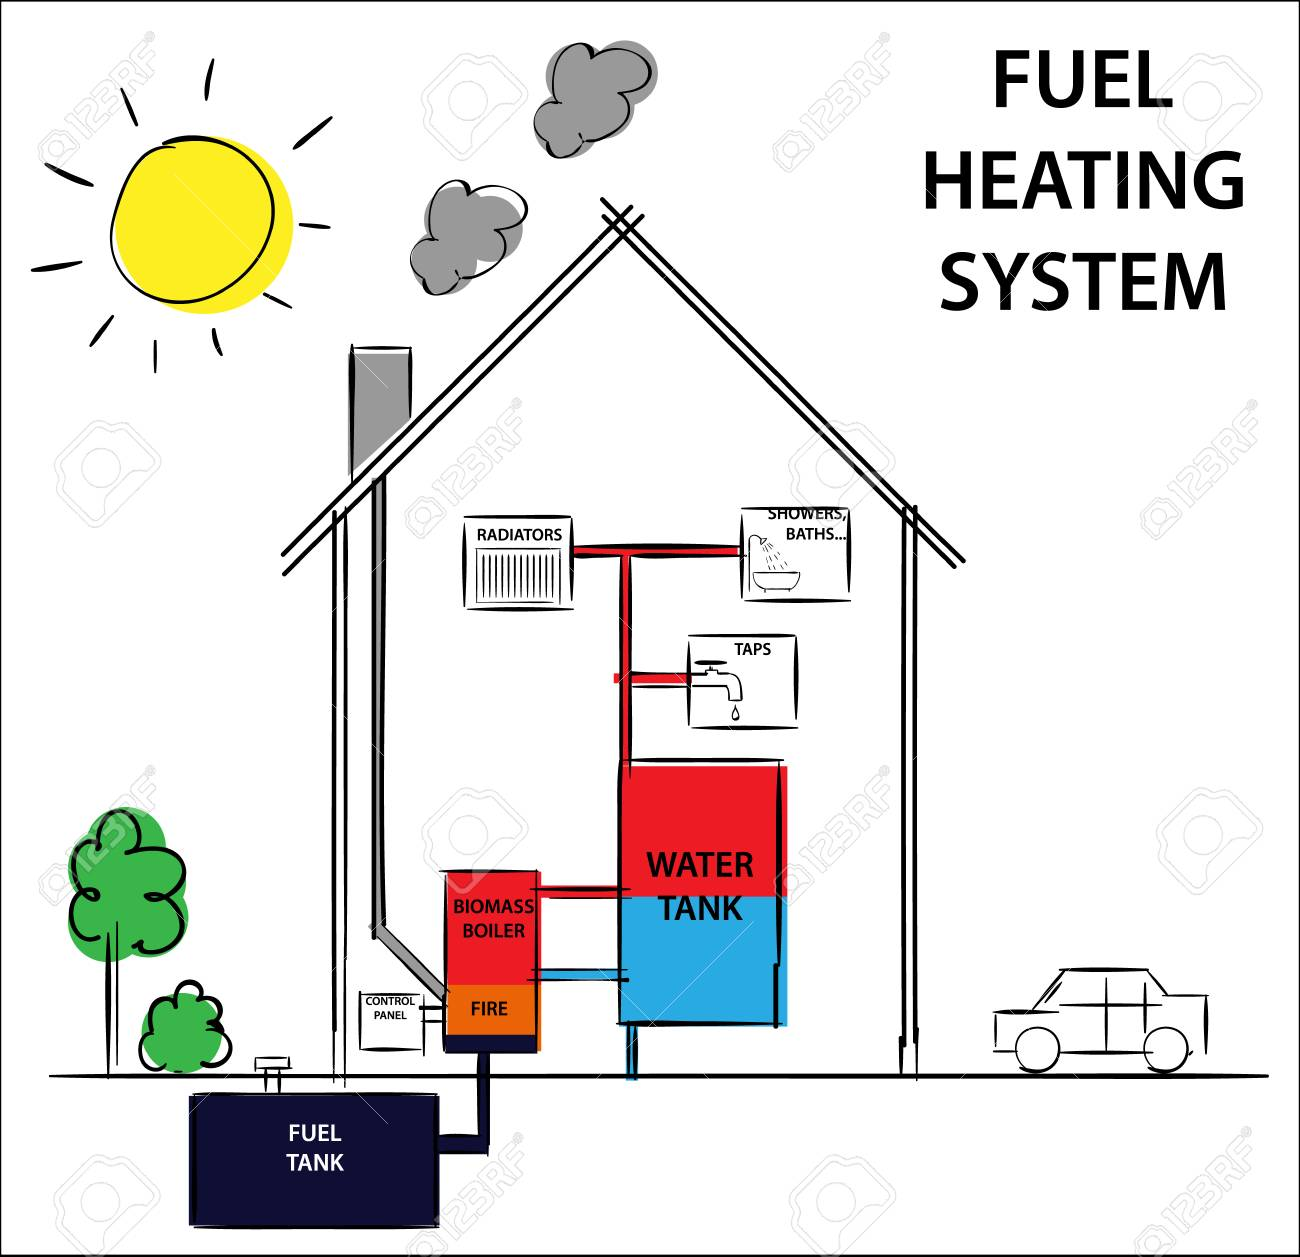 Gas or fuel home heating and cooling system diagram drawing gas or fuel home heating and cooling system diagram drawing illustration stock vector pooptronica